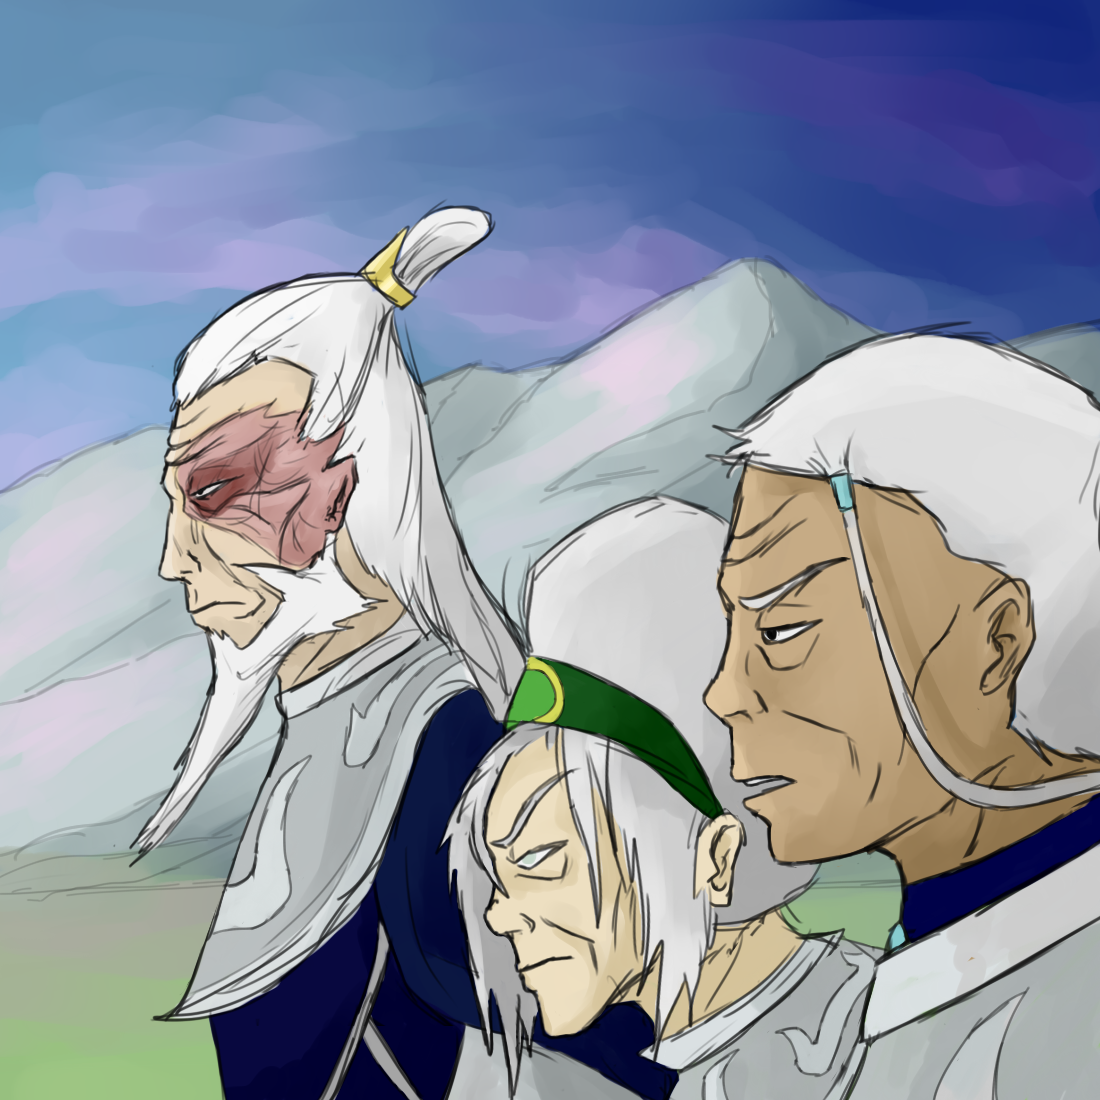 Zaofu The Order Of The White Lotus Is Here Avatar The Last Airbender The Legend Of Korra Know Your Meme